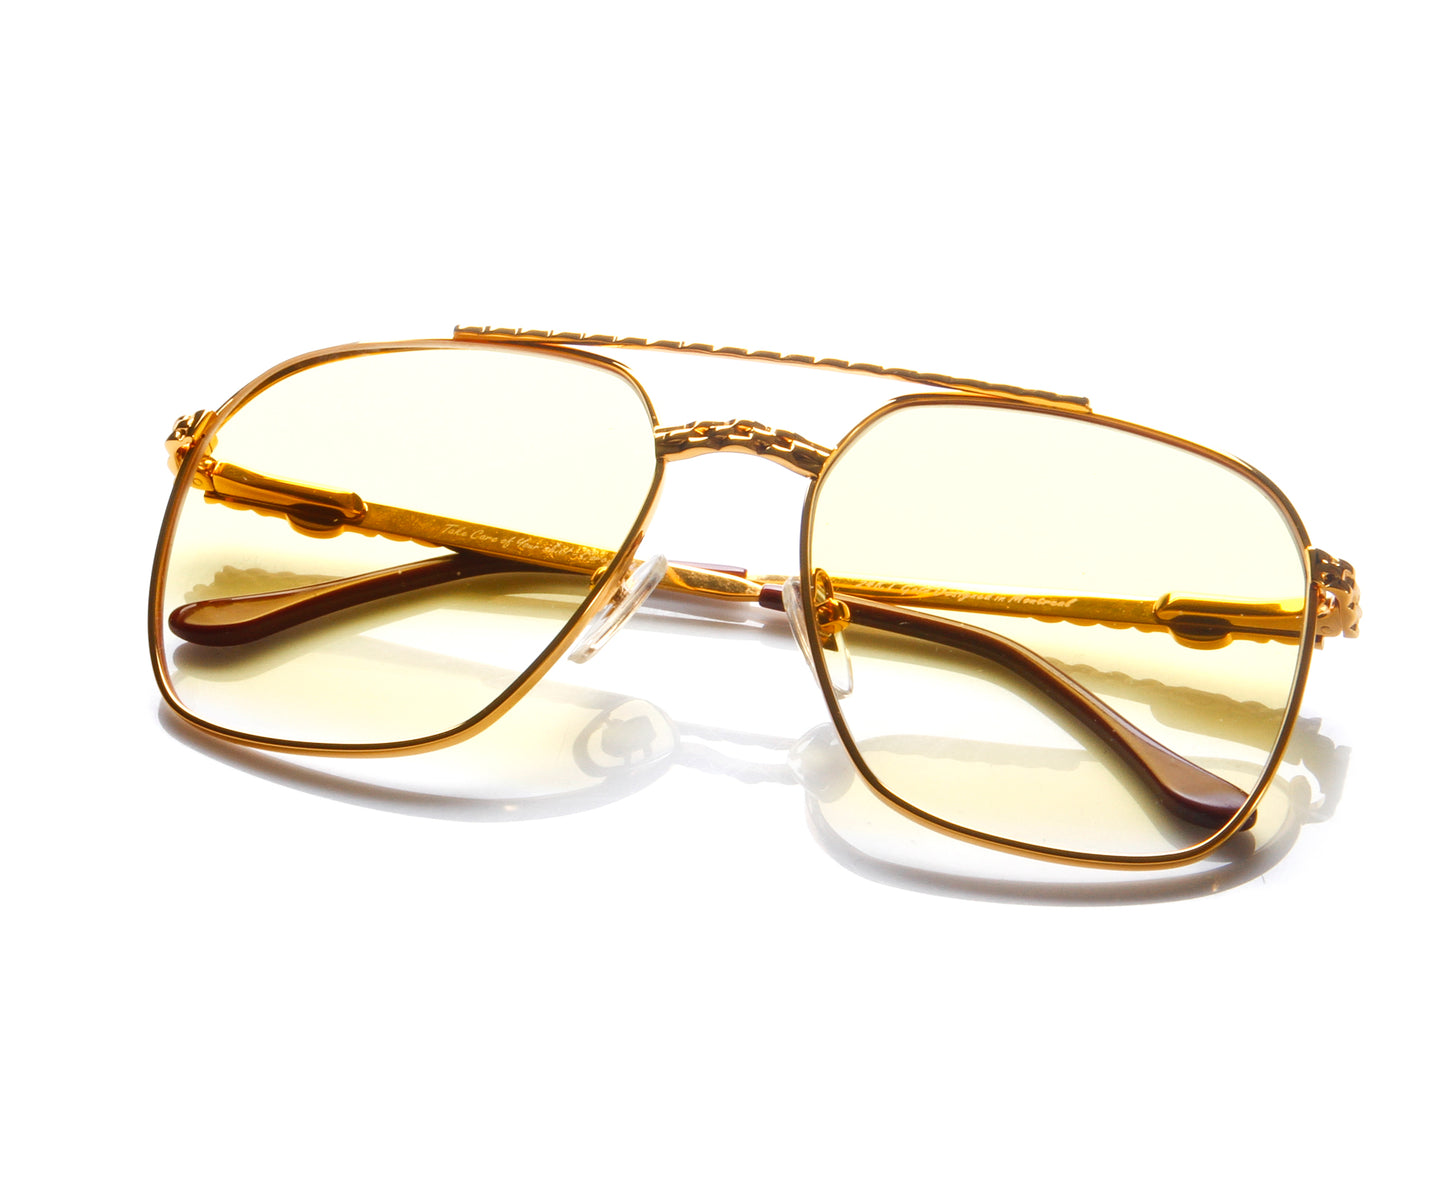 VF XL Masterpiece 24KT Gold (Yellow Gradient) Thumbnail, VF Masterpiece , glasses frames, eyeglasses online, eyeglass frames, mens glasses, womens glasses, buy glasses online, designer eyeglasses, vintage sunglasses, retro sunglasses, vintage glasses, sunglass, eyeglass, glasses, lens, vintage frames company, vf